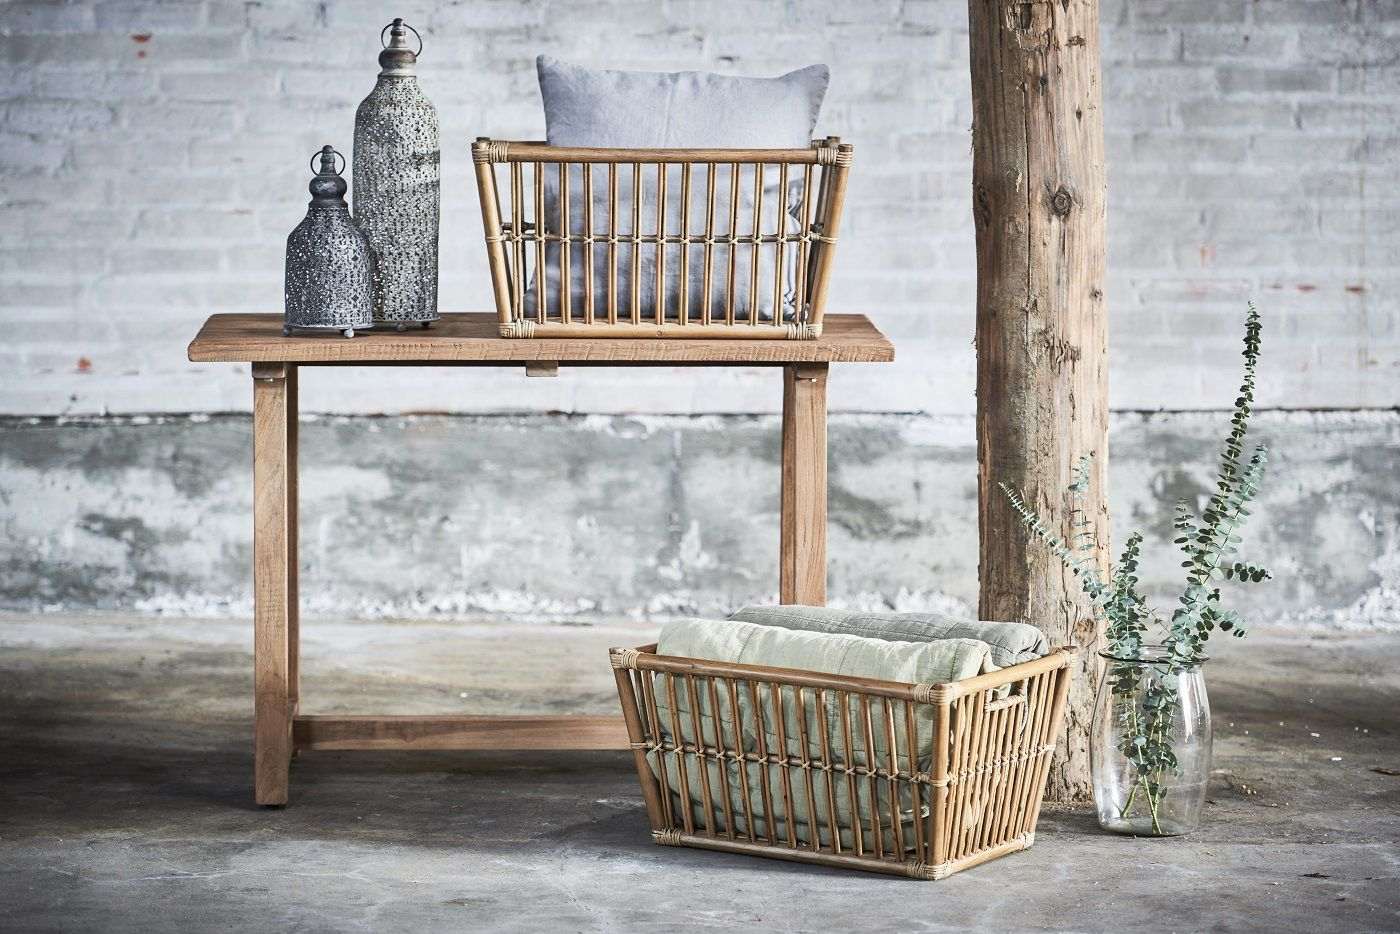 Sika-Design Marche Kurv - Antique - Originals by Sika